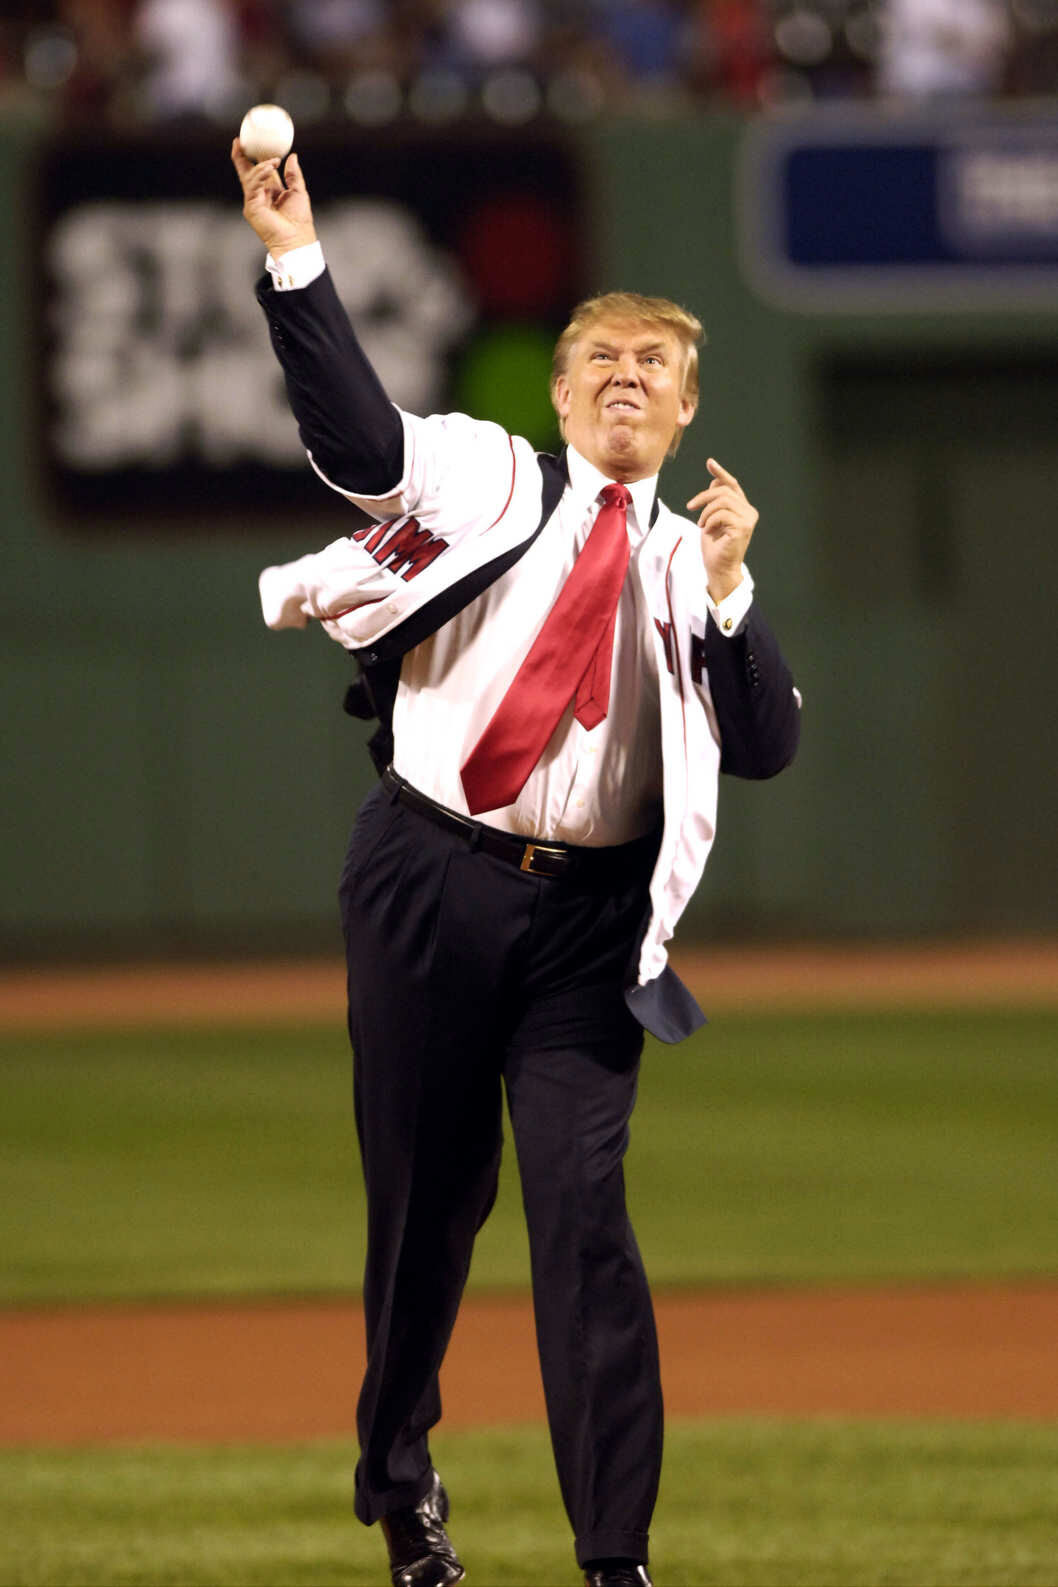 112220 Slosberg trump first pitch.jpg